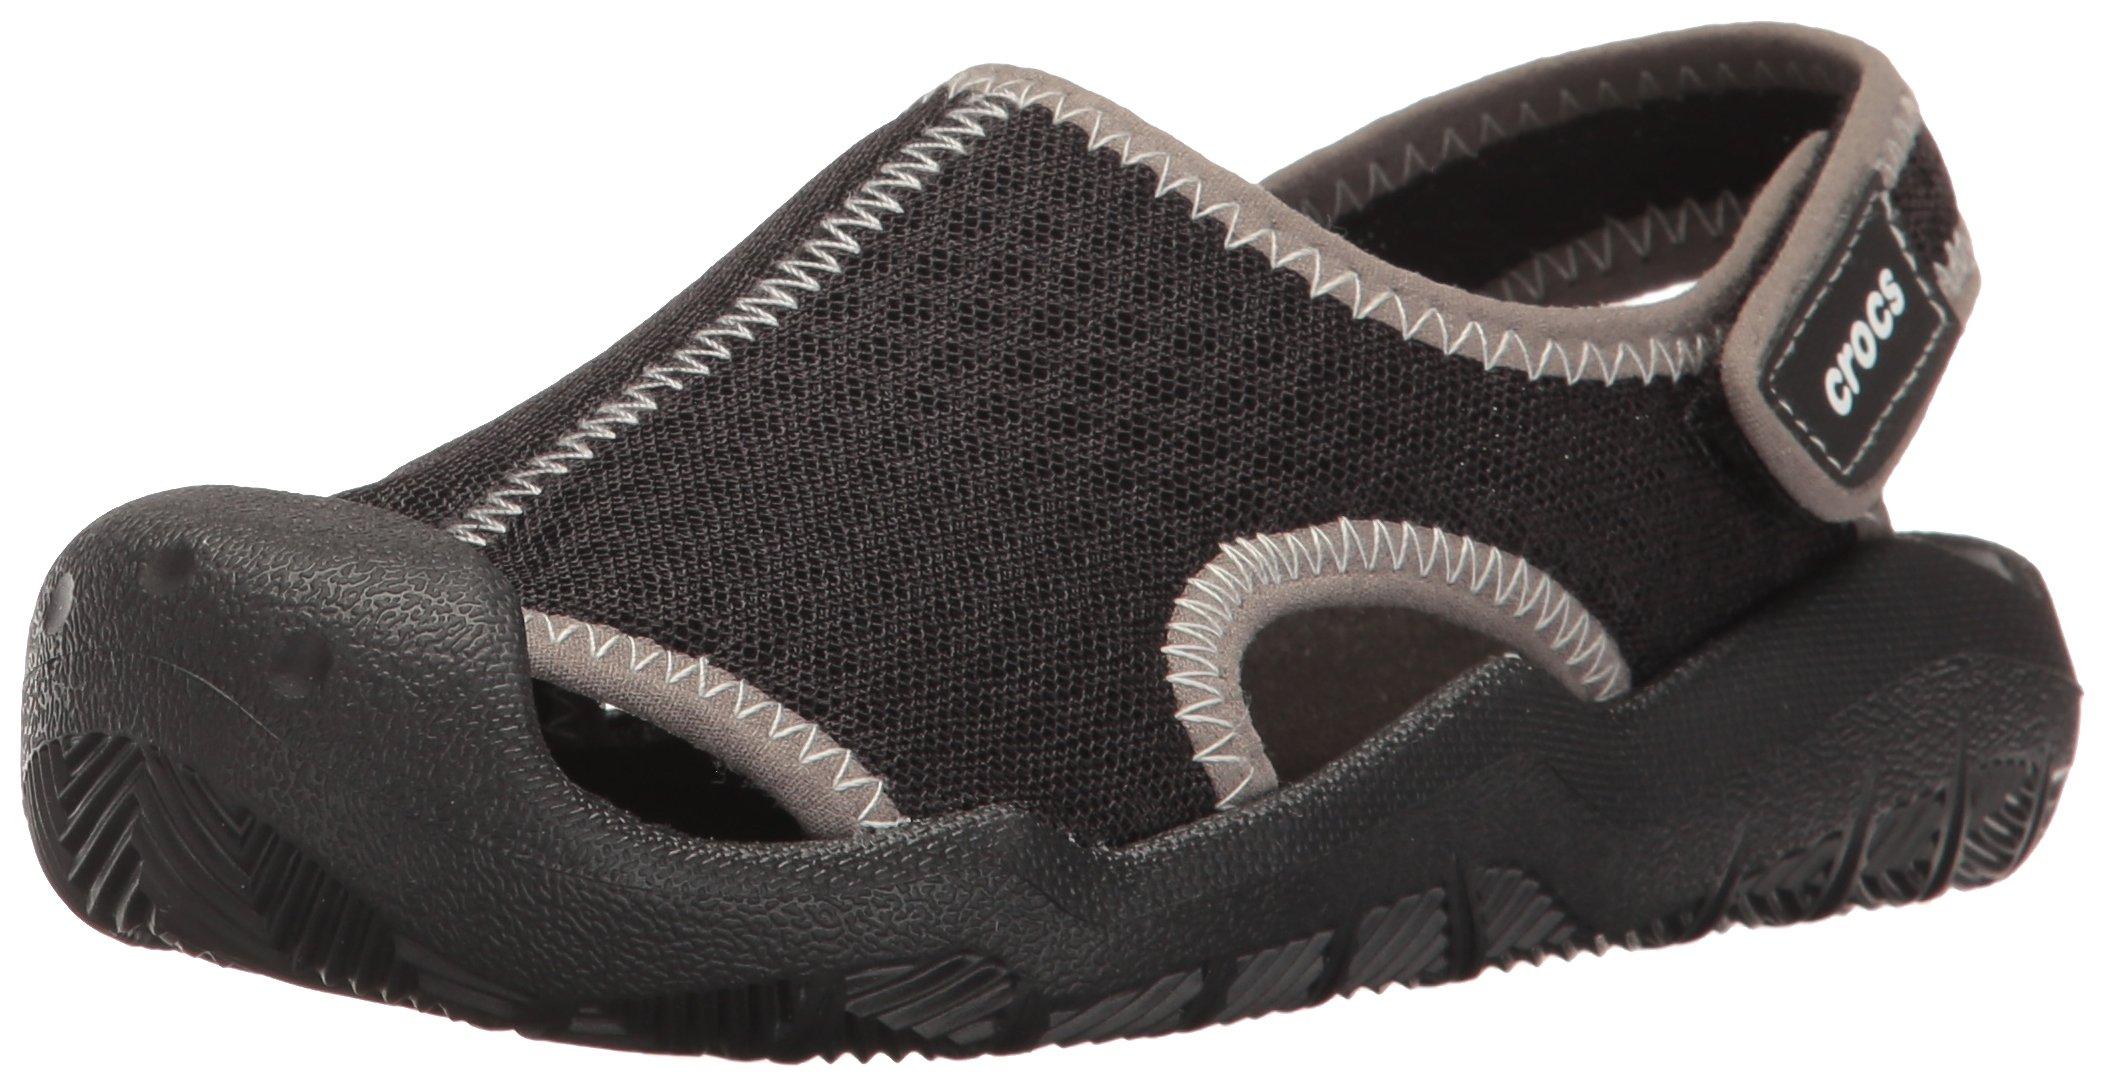 Crocs Kids' Swiftwater Sandal,Black/White,7 M US Toddler